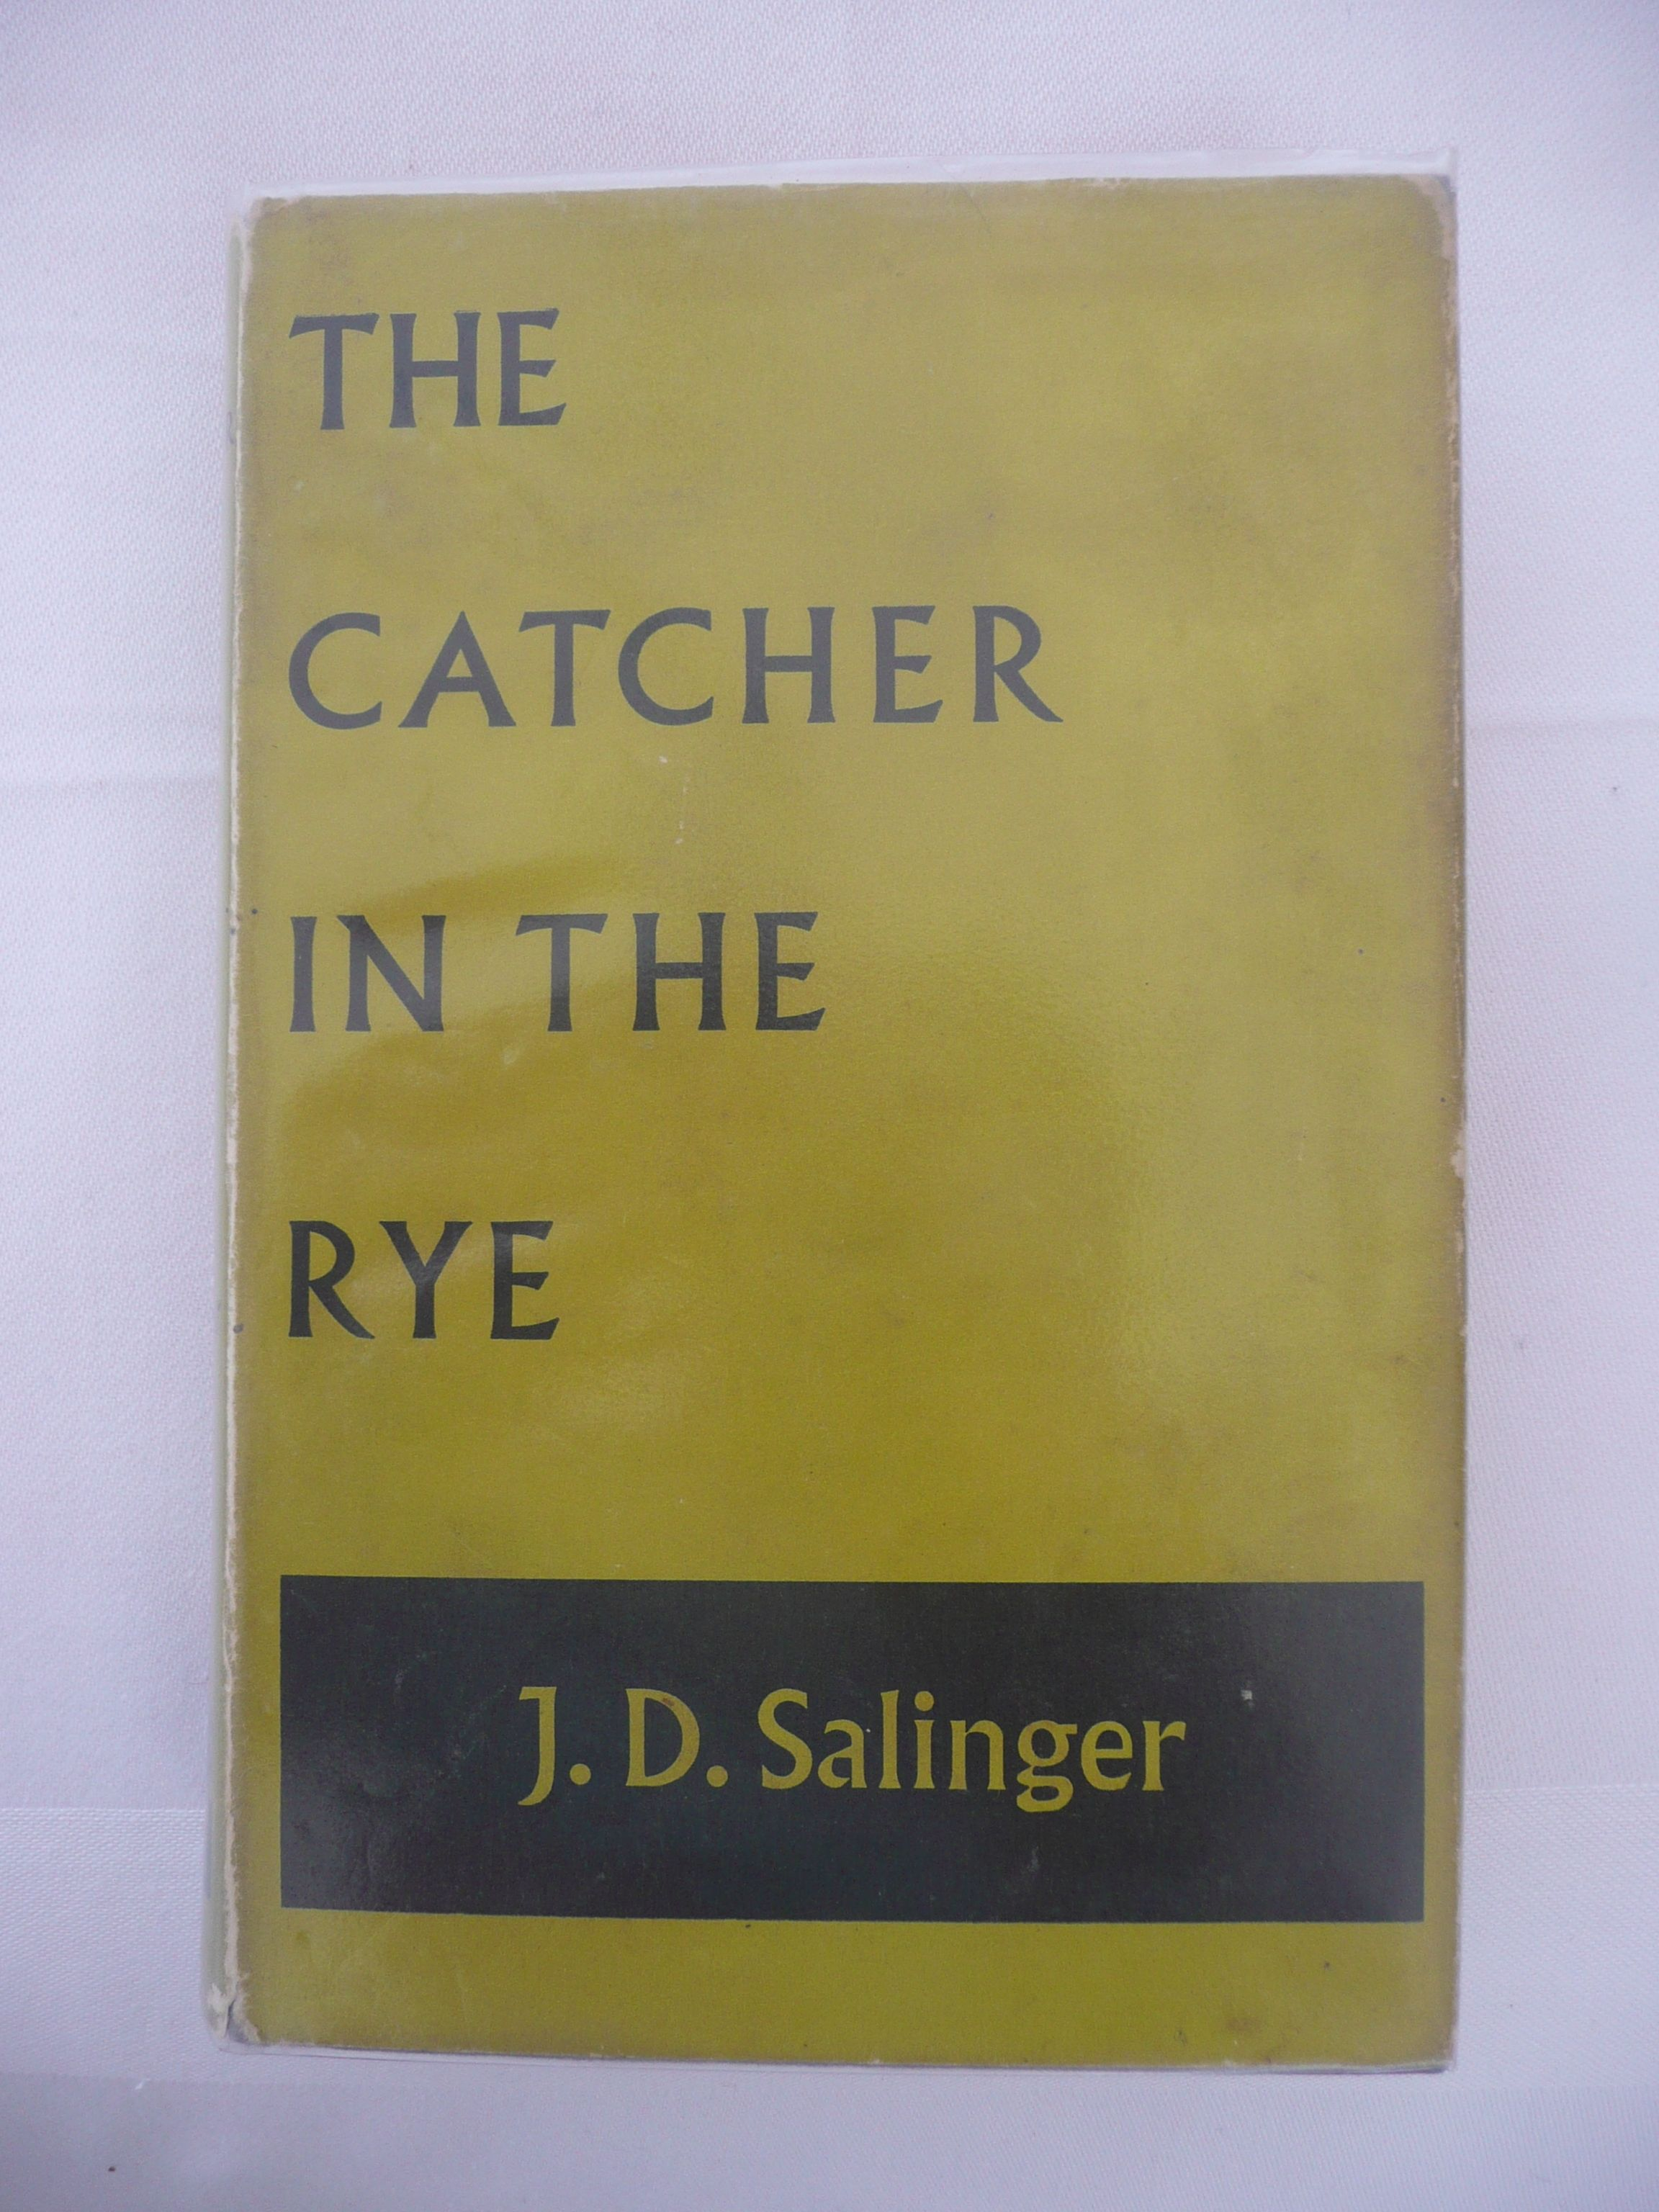 catcher on the rye by j d As the notoriety of the catcher in the rye grew, salinger gradually withdrew from public view in 1953, he moved from an apartment at 300 east 57th street, new york, to cornish, new hampshire early in his time at cornish he was relatively sociable, particularly with students at windsor high school  critical companion to j d salinger: a.